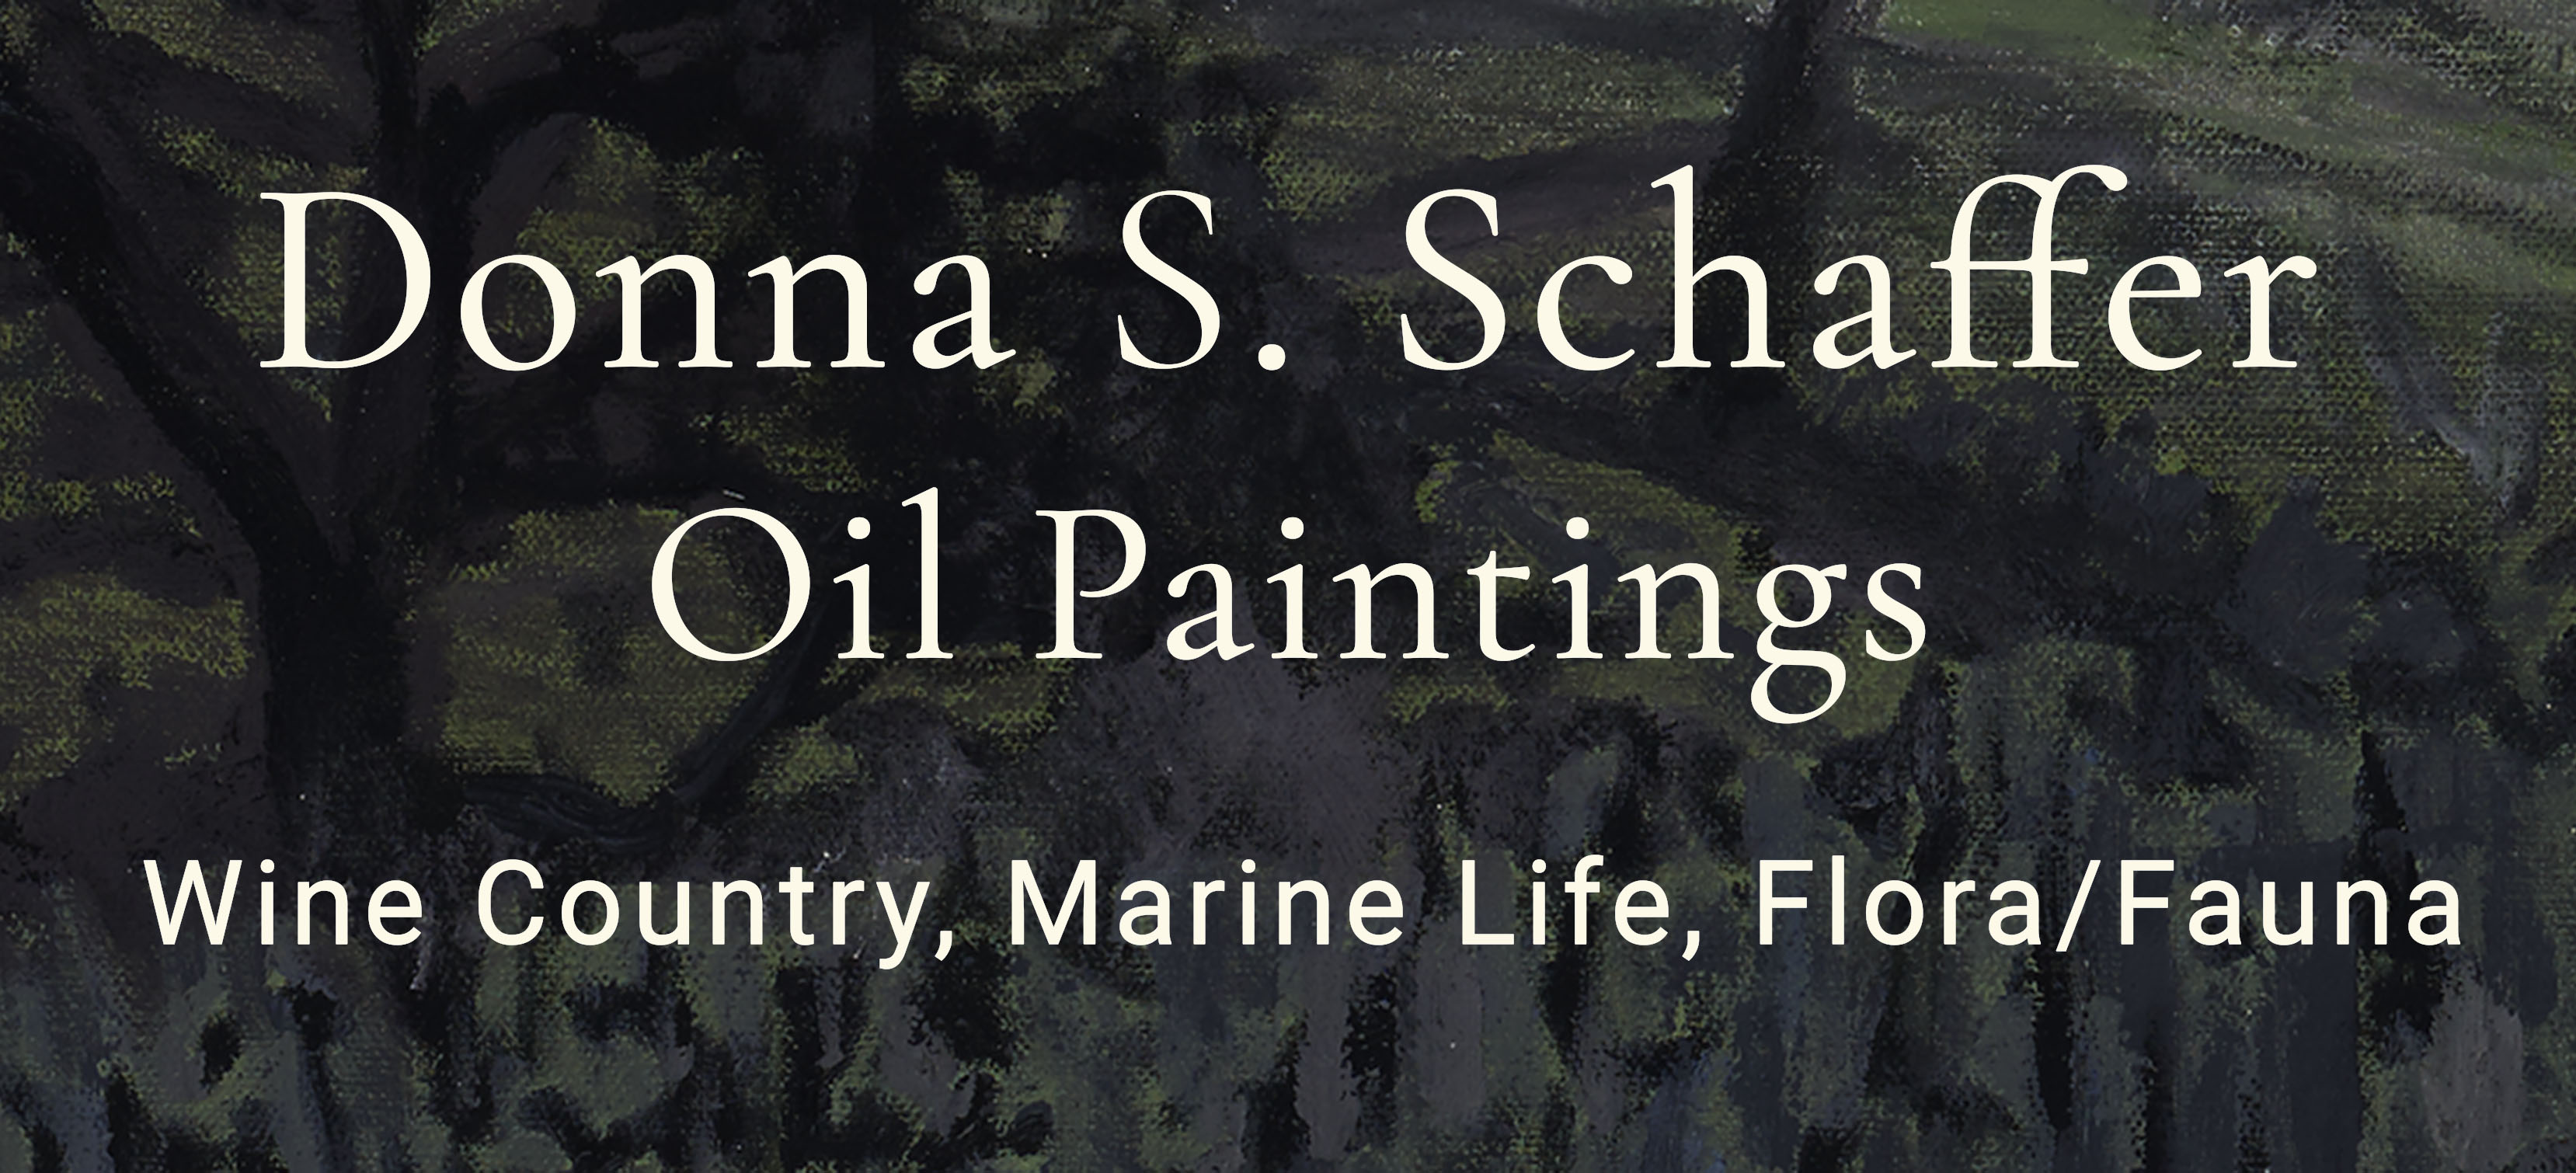 Donna Schaffer Original Oil Paintings Logo